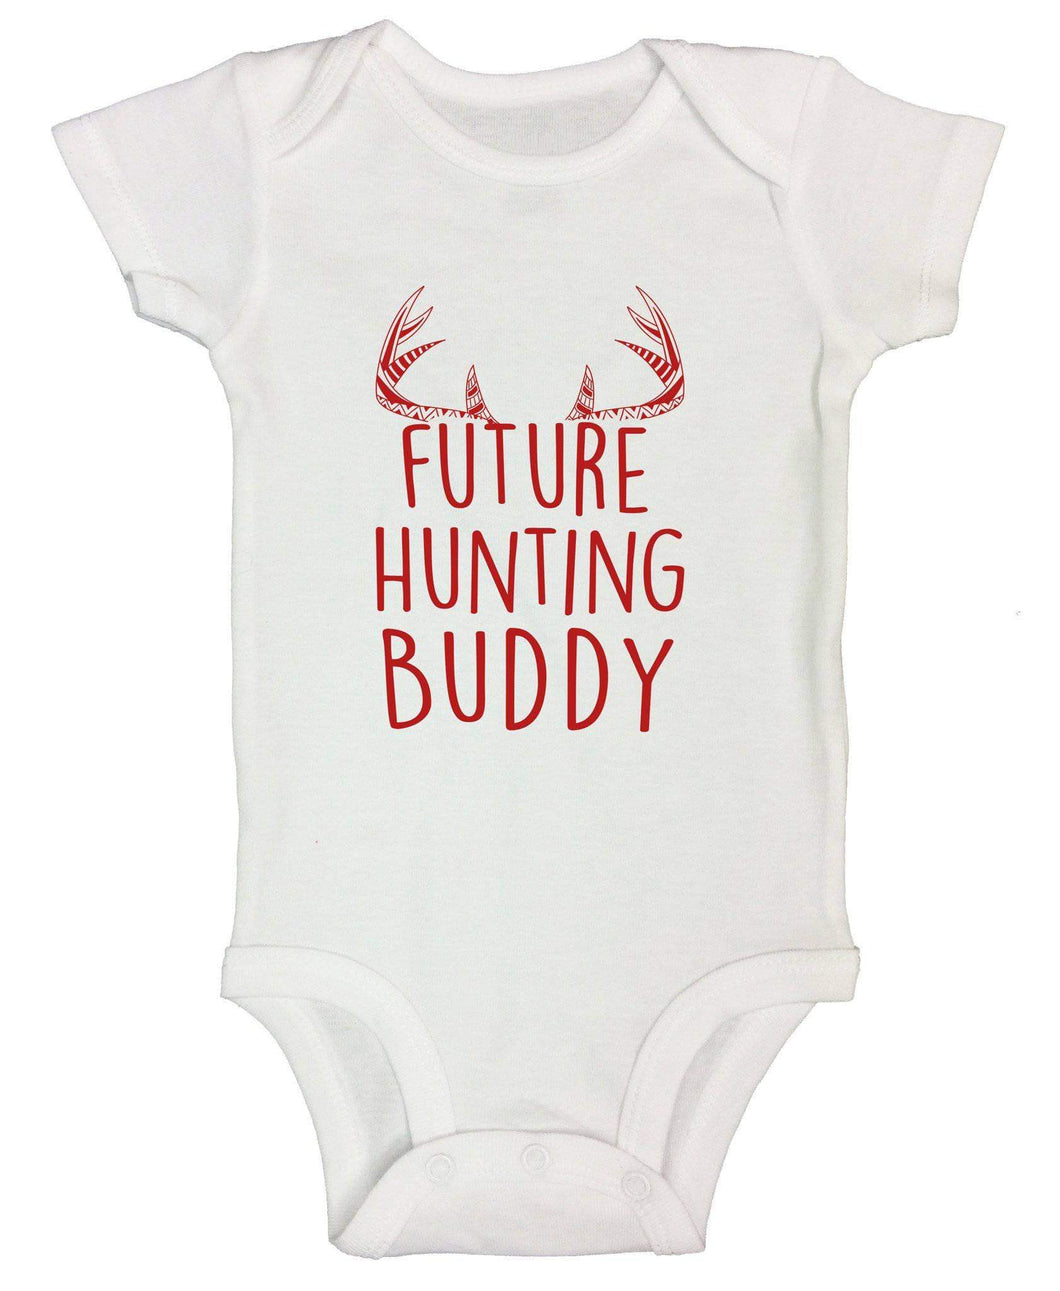 Future Hunting Buddy FUNNY KIDS ONESIE Short Sleeve 0-3 Months Womens Tank Tops